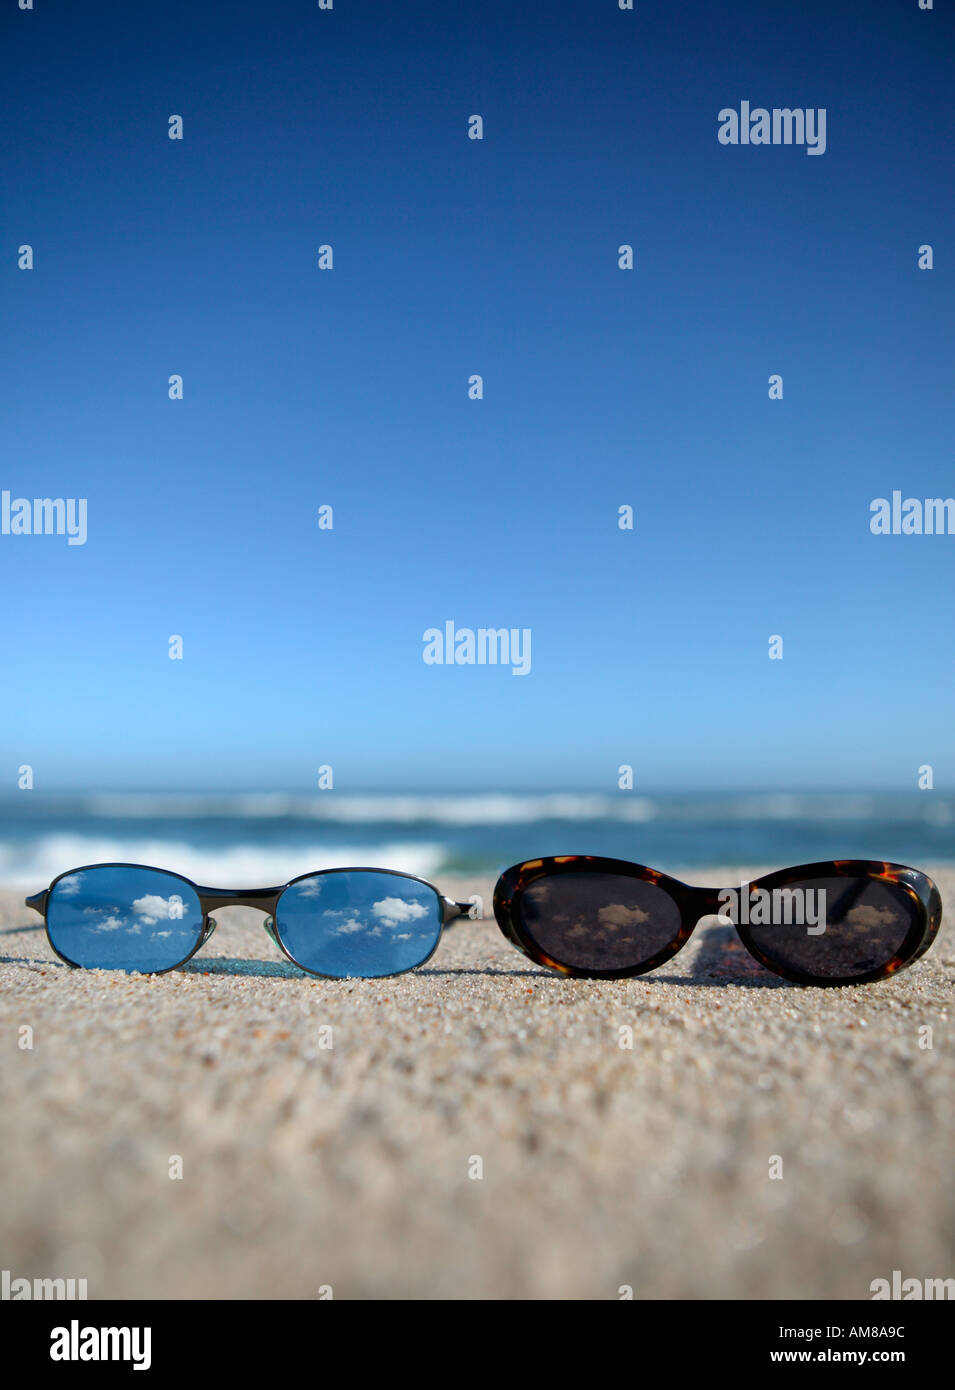 Two glasses laying on beach. - Stock Image